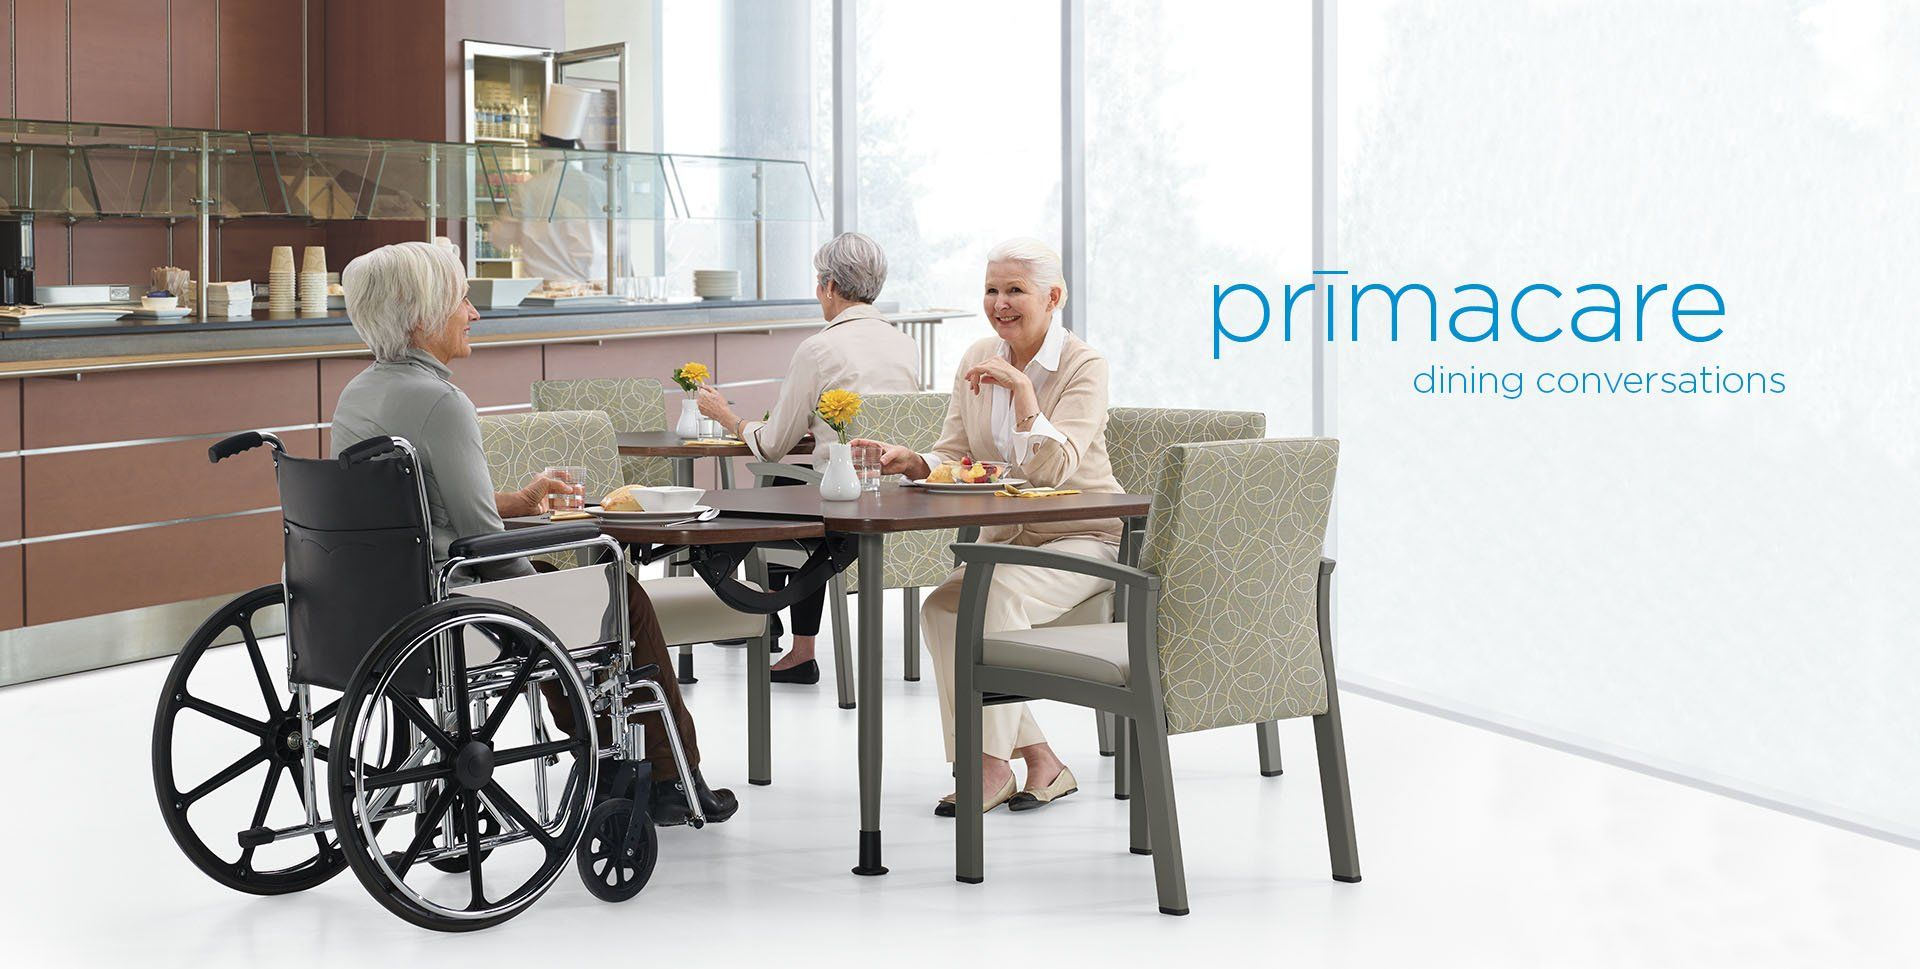 Dining furniture for a healthcare facility by